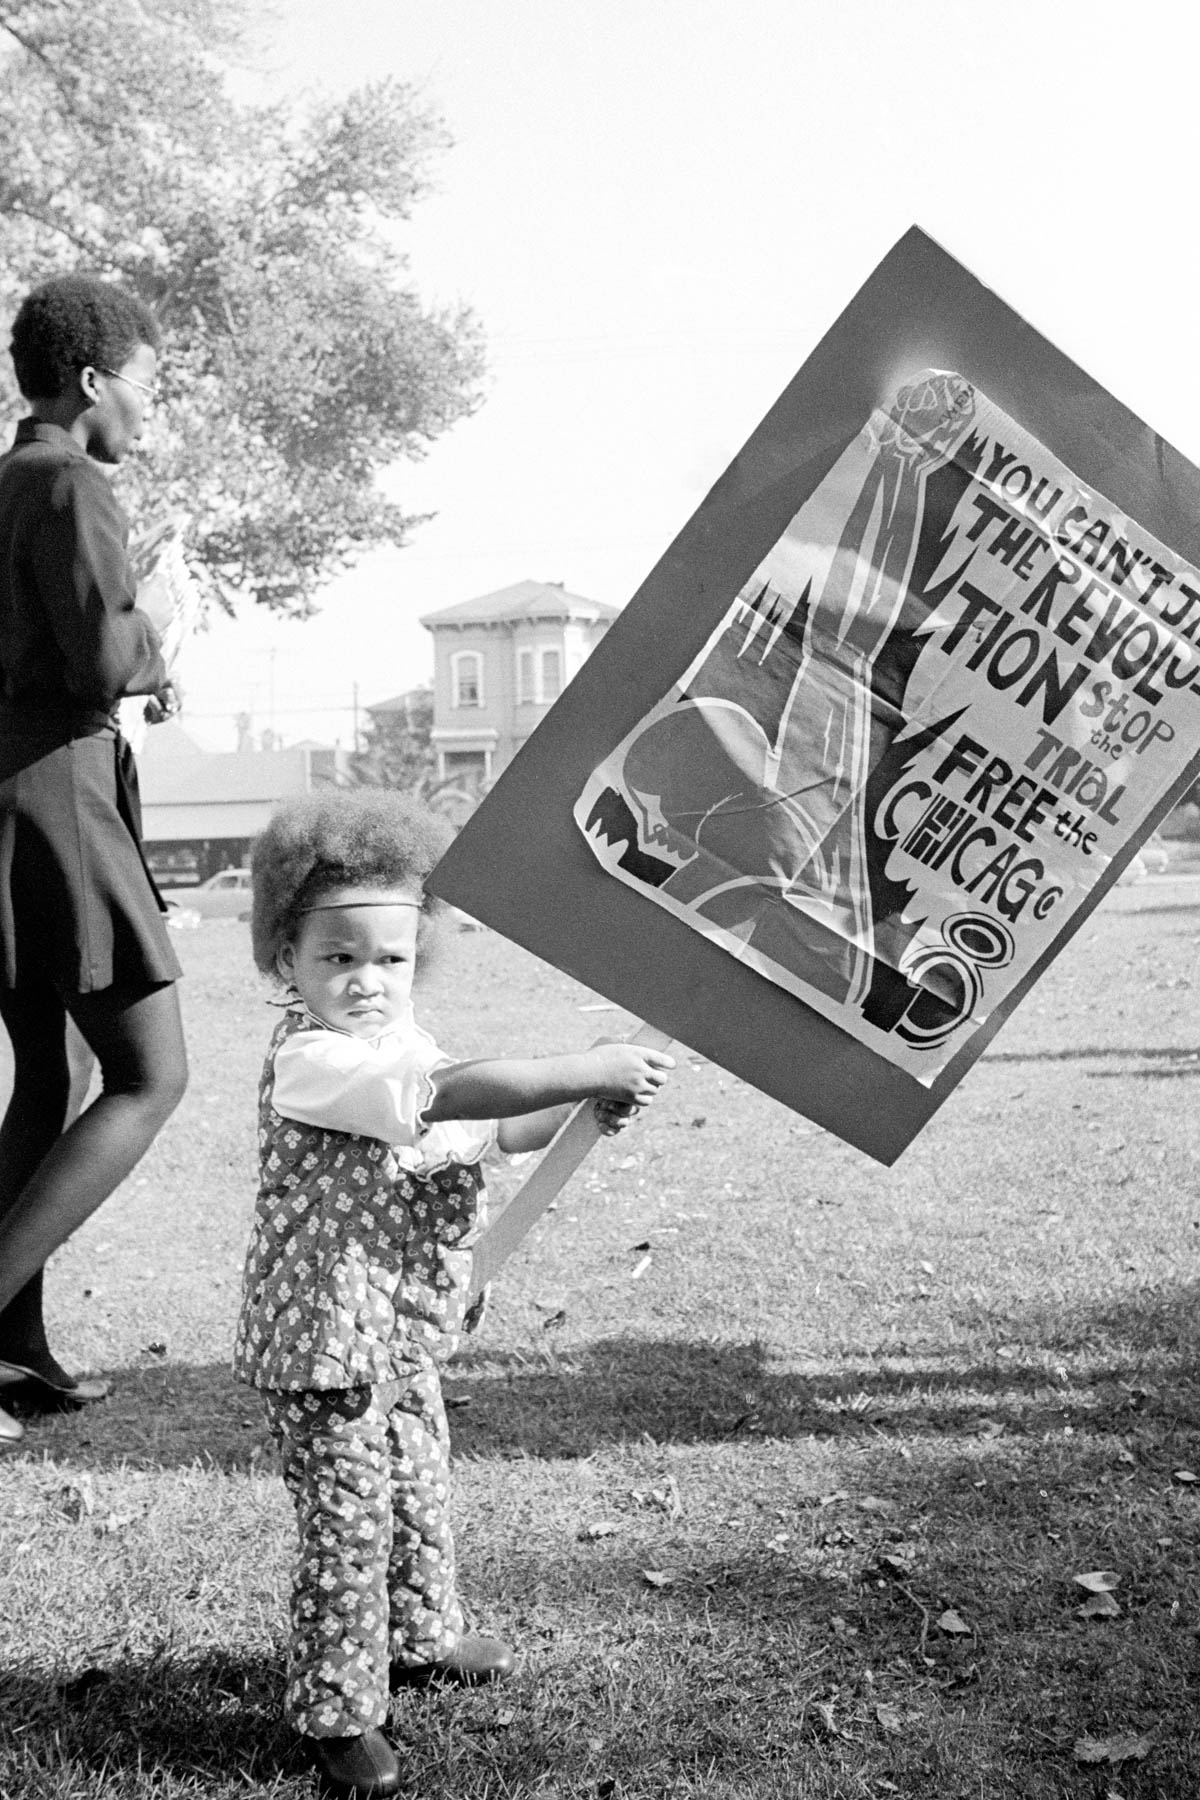 """Robert Wade, California, 1969-1970, courtesy of the photographer,from """"All Power: Visual Legacies of the Black Panther Party,"""" PCNW 2018"""